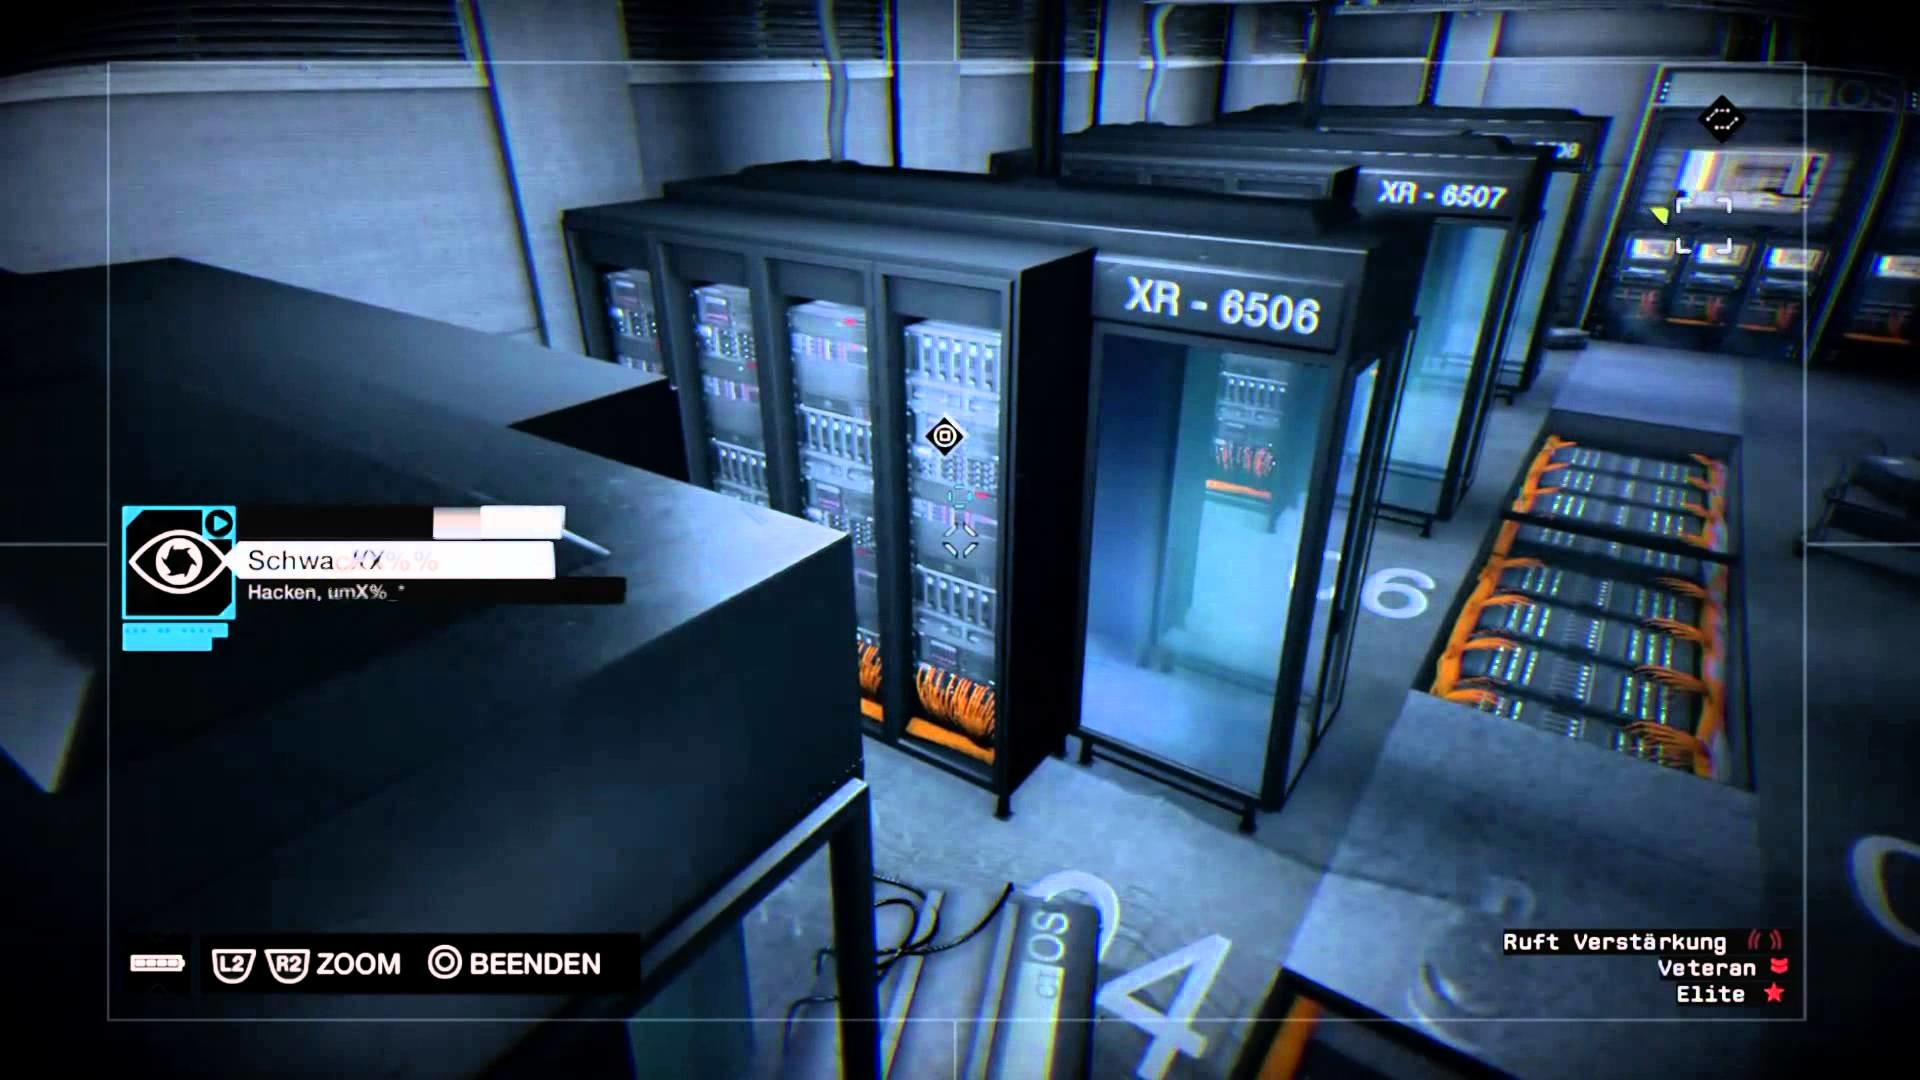 1920x1080 server room- Watch Dogs - PS4